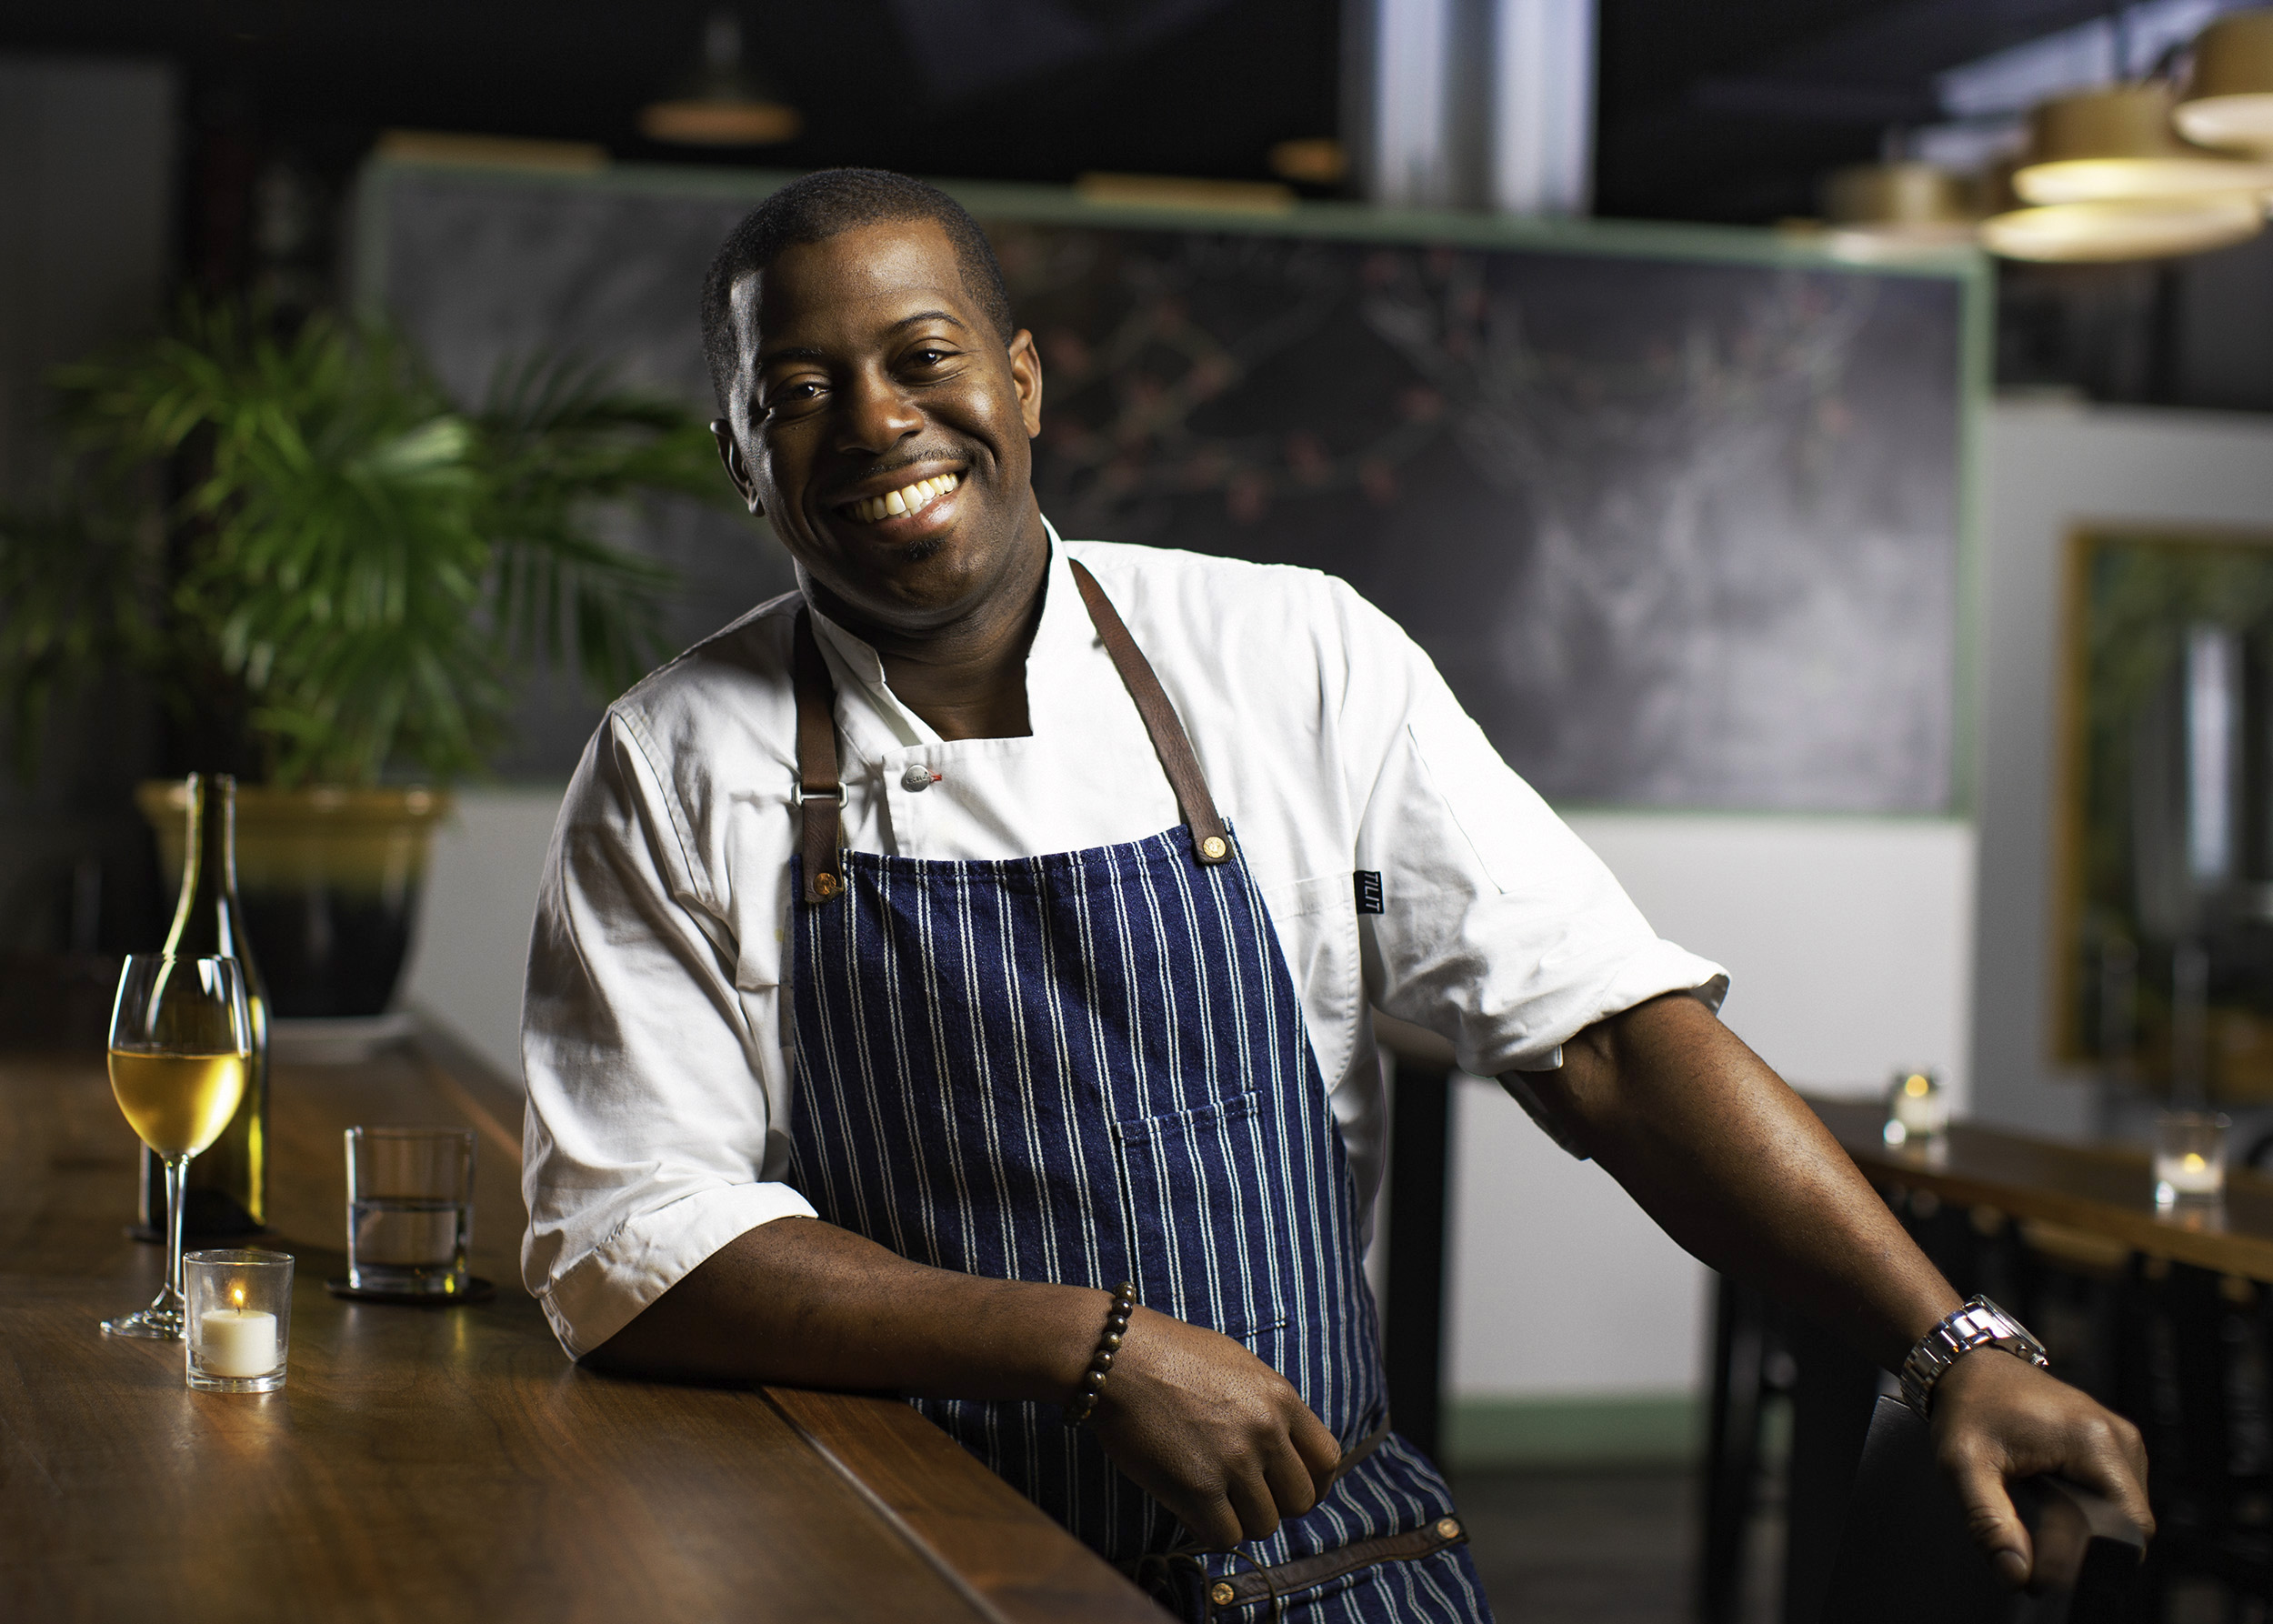 Portrait of chef in restaurant kitchen